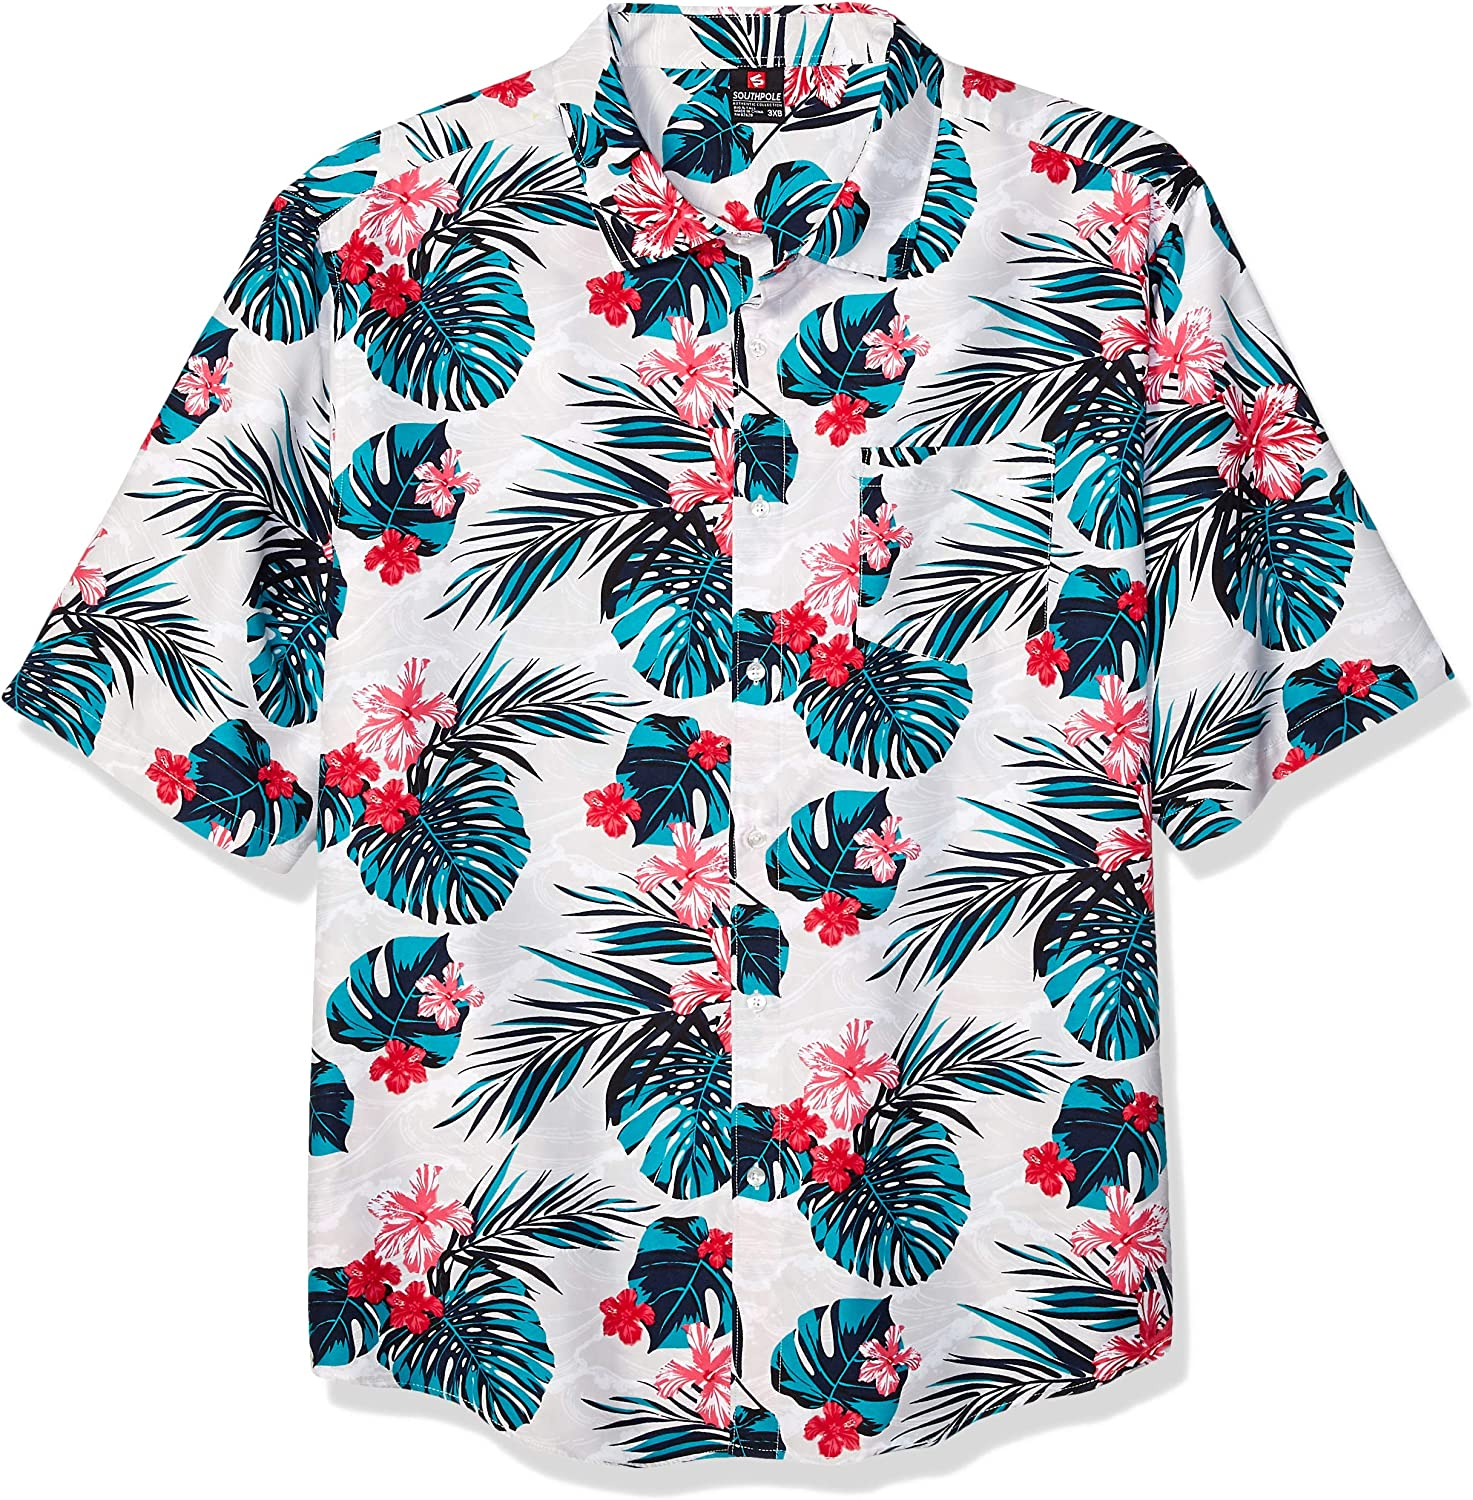 Southpole Men's All Over Print Woven Shirt: Clothing